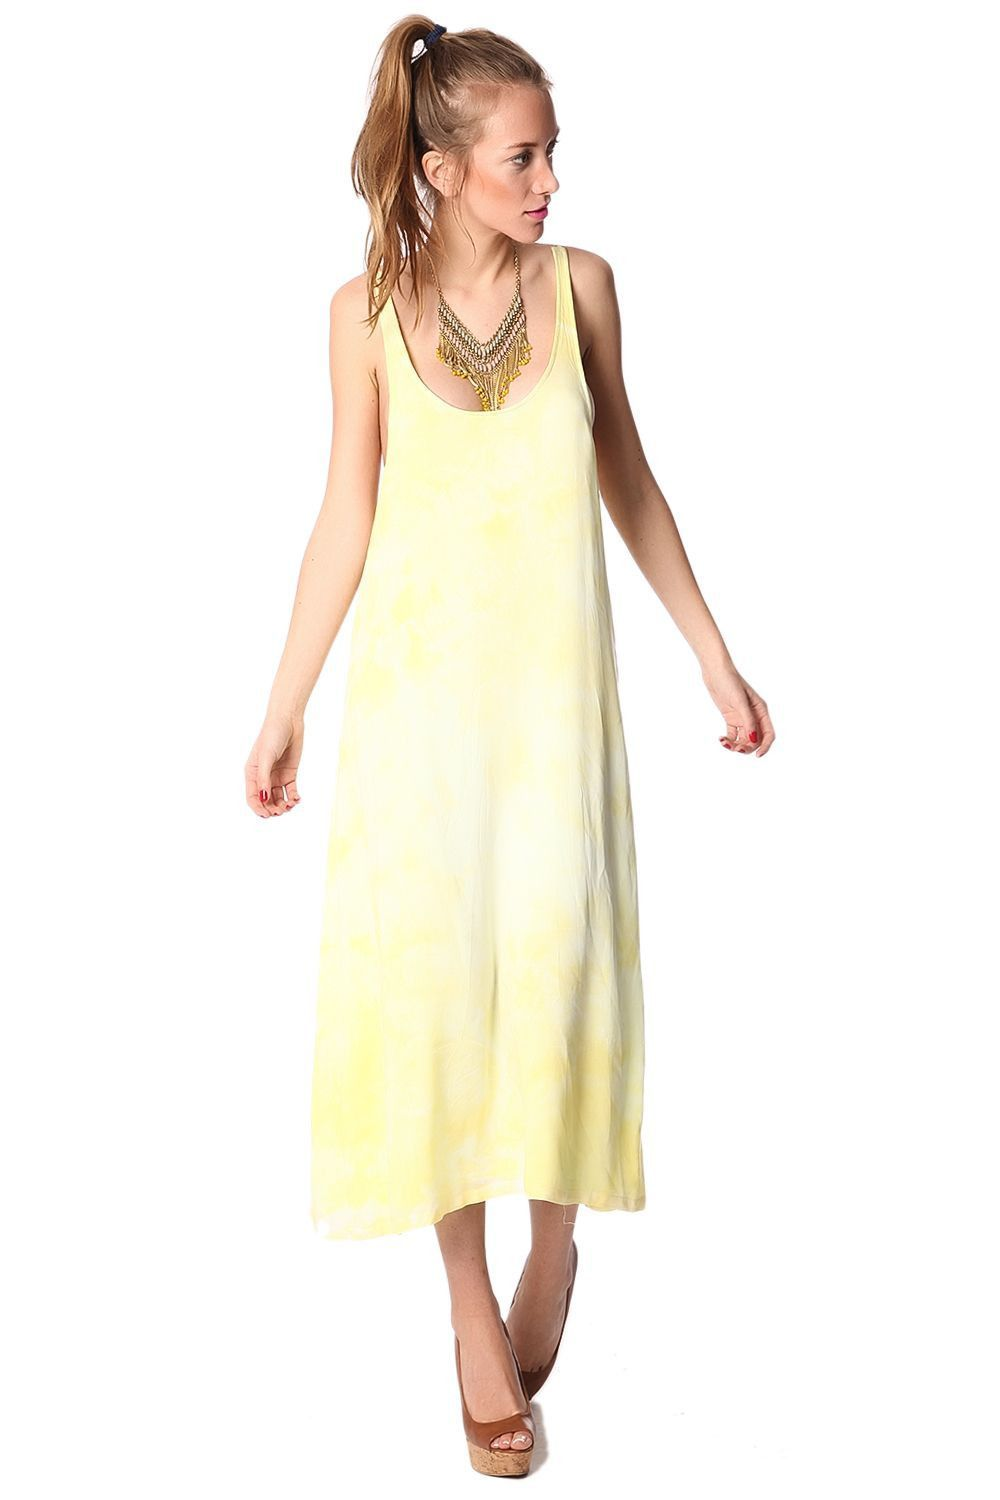 Q2 Yellow Dress With Low Back And Spaghetti Strap